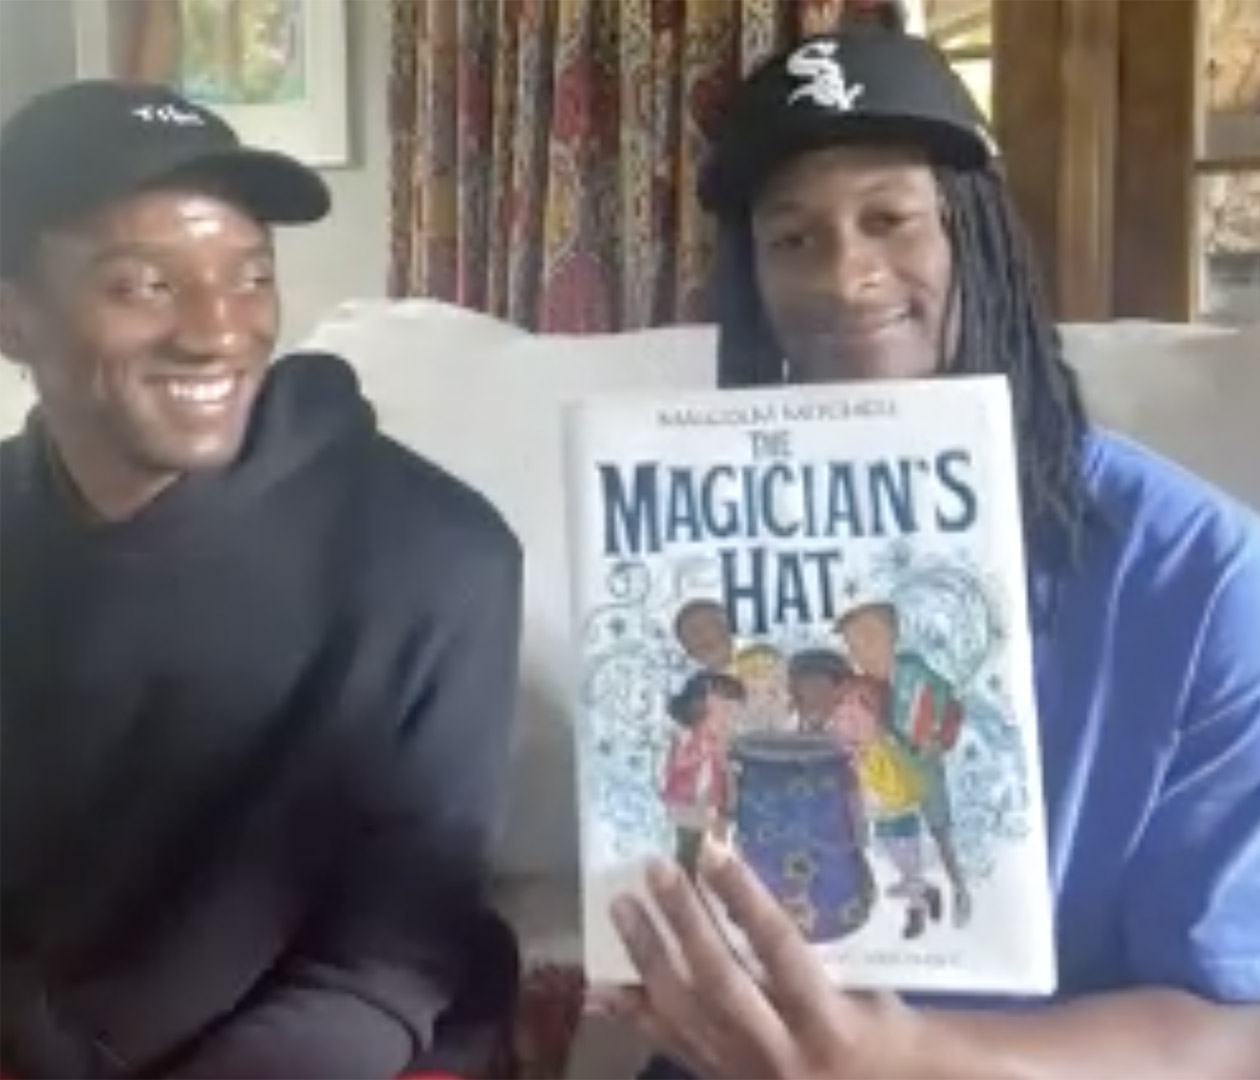 Join Todd Gurley and friends reading The Magician's Hat